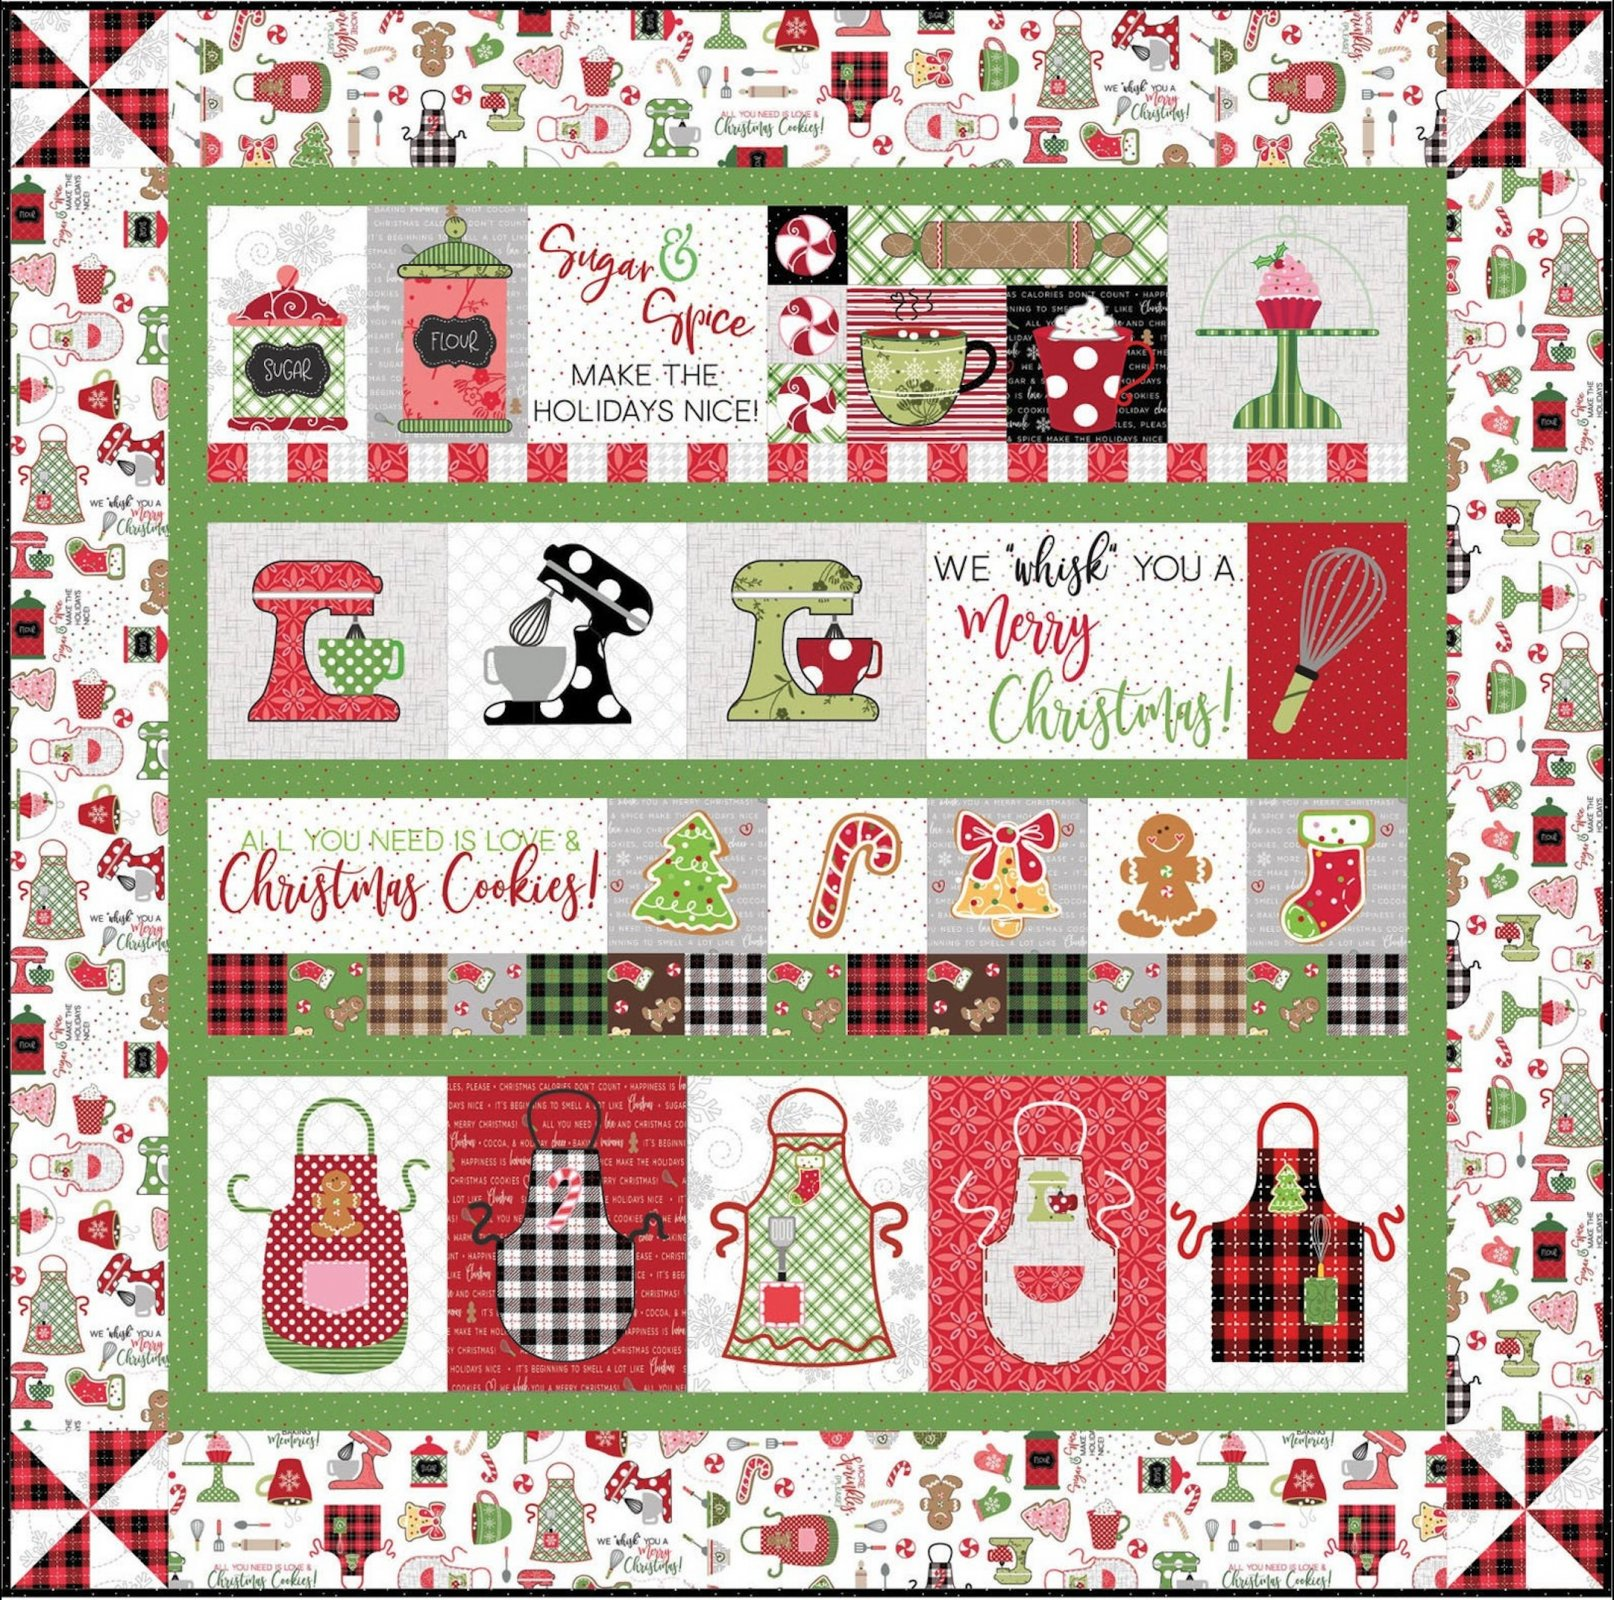 We Whisk You A Merry Christmas Embroidery Quilt Kit - white border